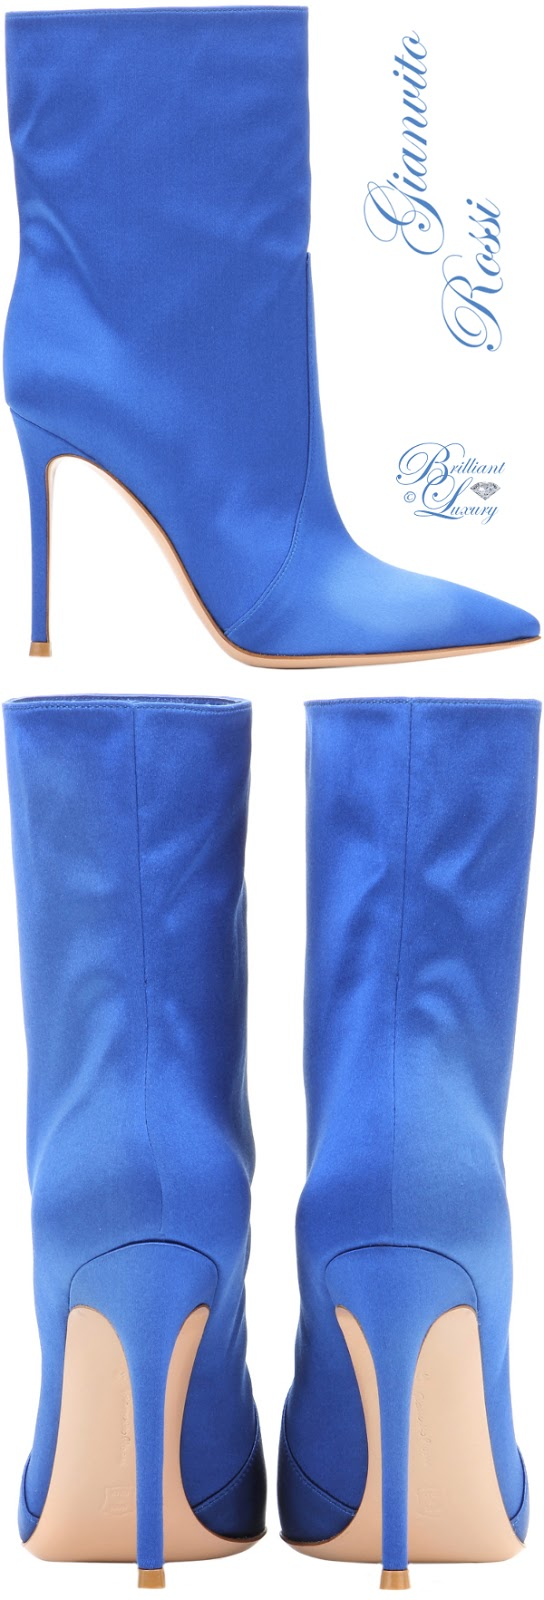 Brilliant Luxury ♦ Gianvito Rossi Melanie satin ankle boots